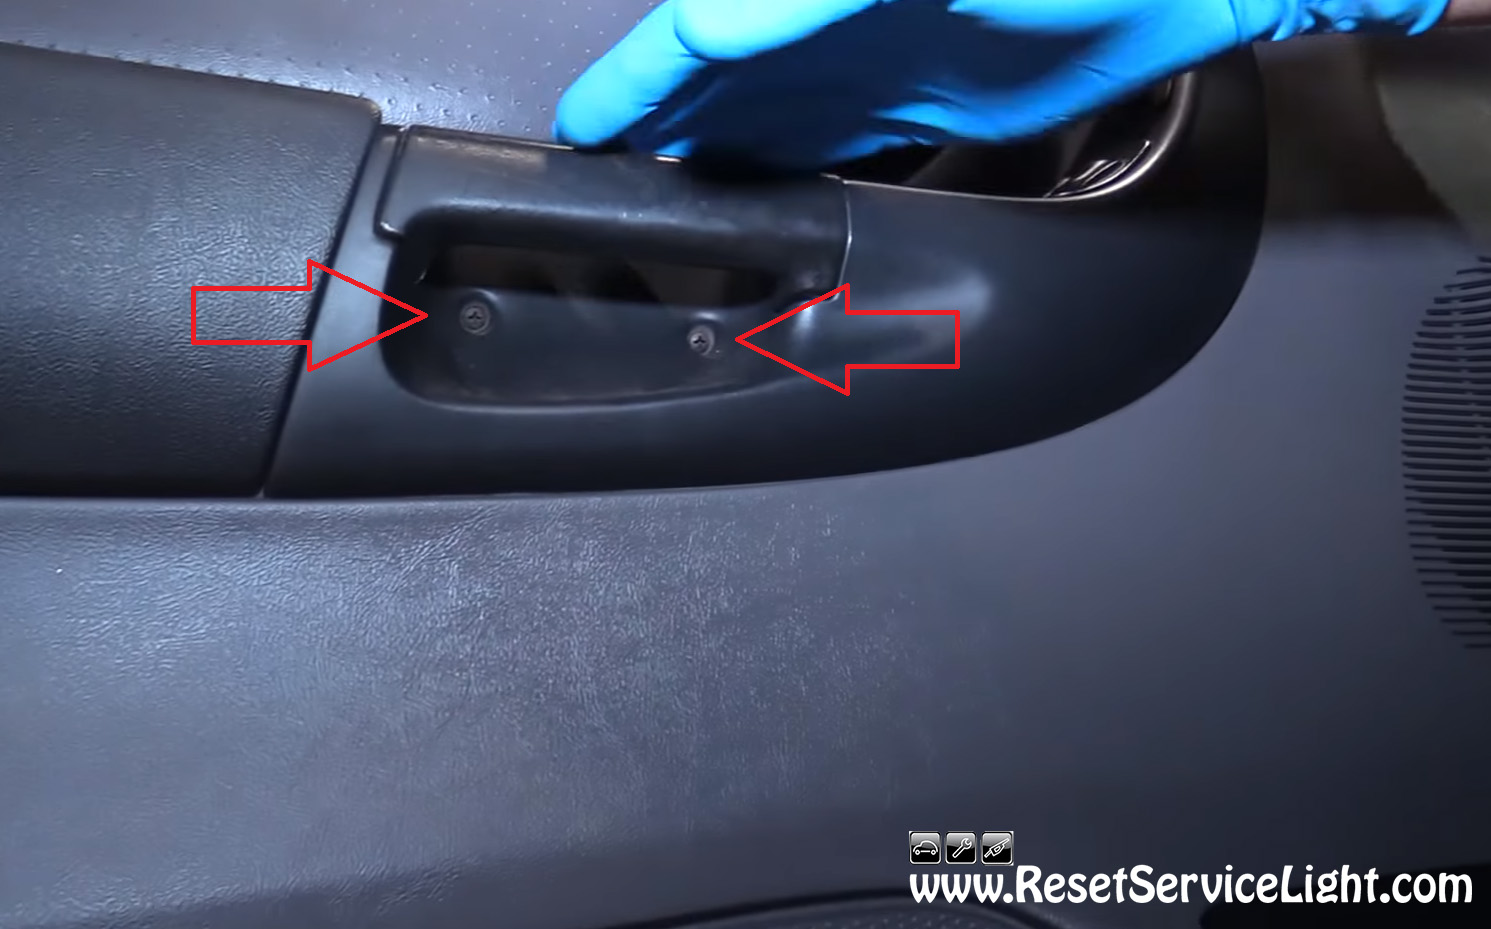 Remove The Bolts Under The Main Door Handle